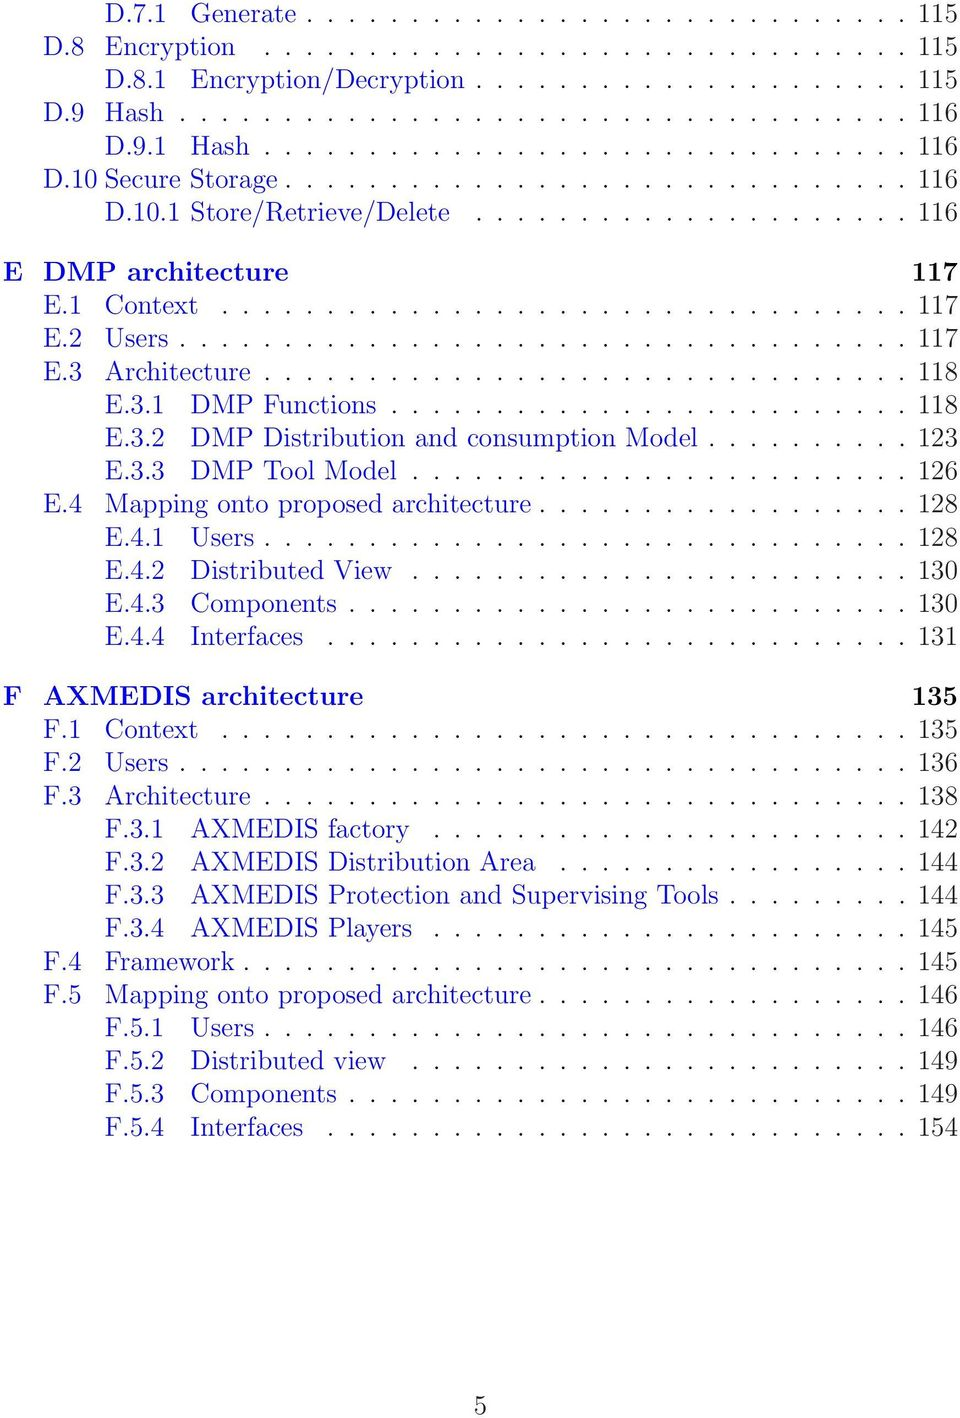 .................................. 117 E.3 Architecture............................... 118 E.3.1 DMP Functions......................... 118 E.3.2 DMP Distribution and consumption Model.......... 123 E.